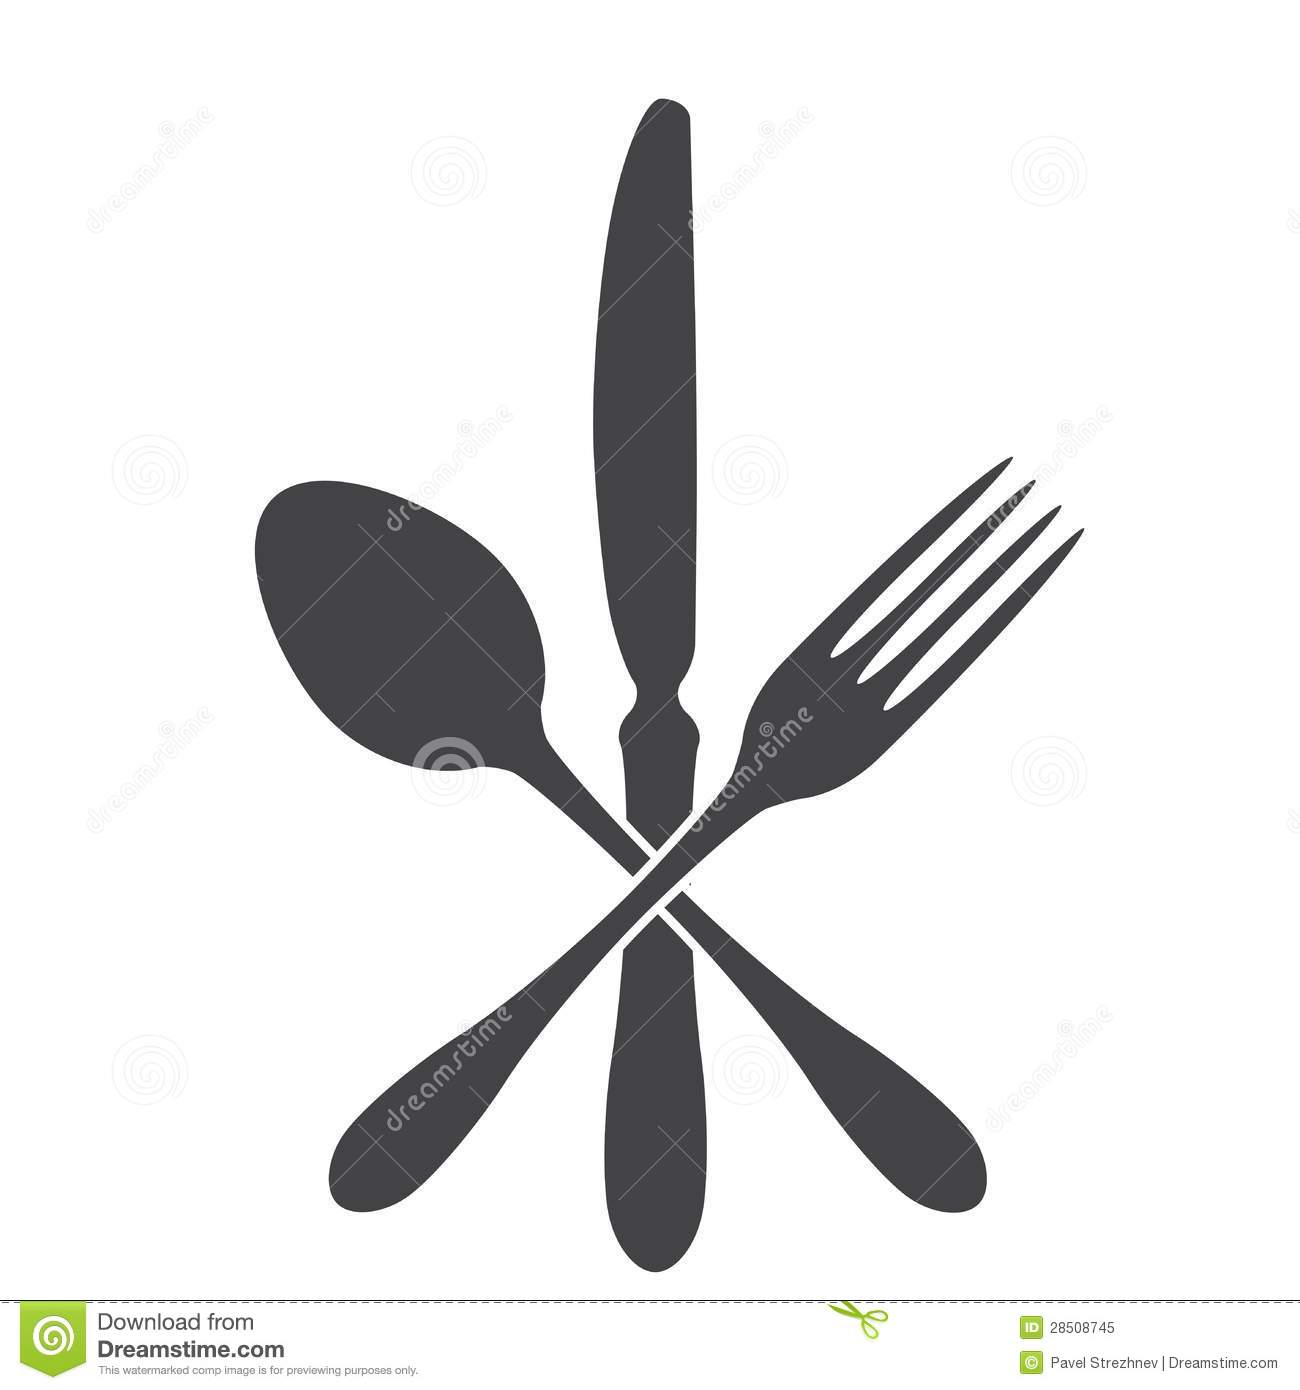 Spoon knife and fork cross royalty free stock photo image